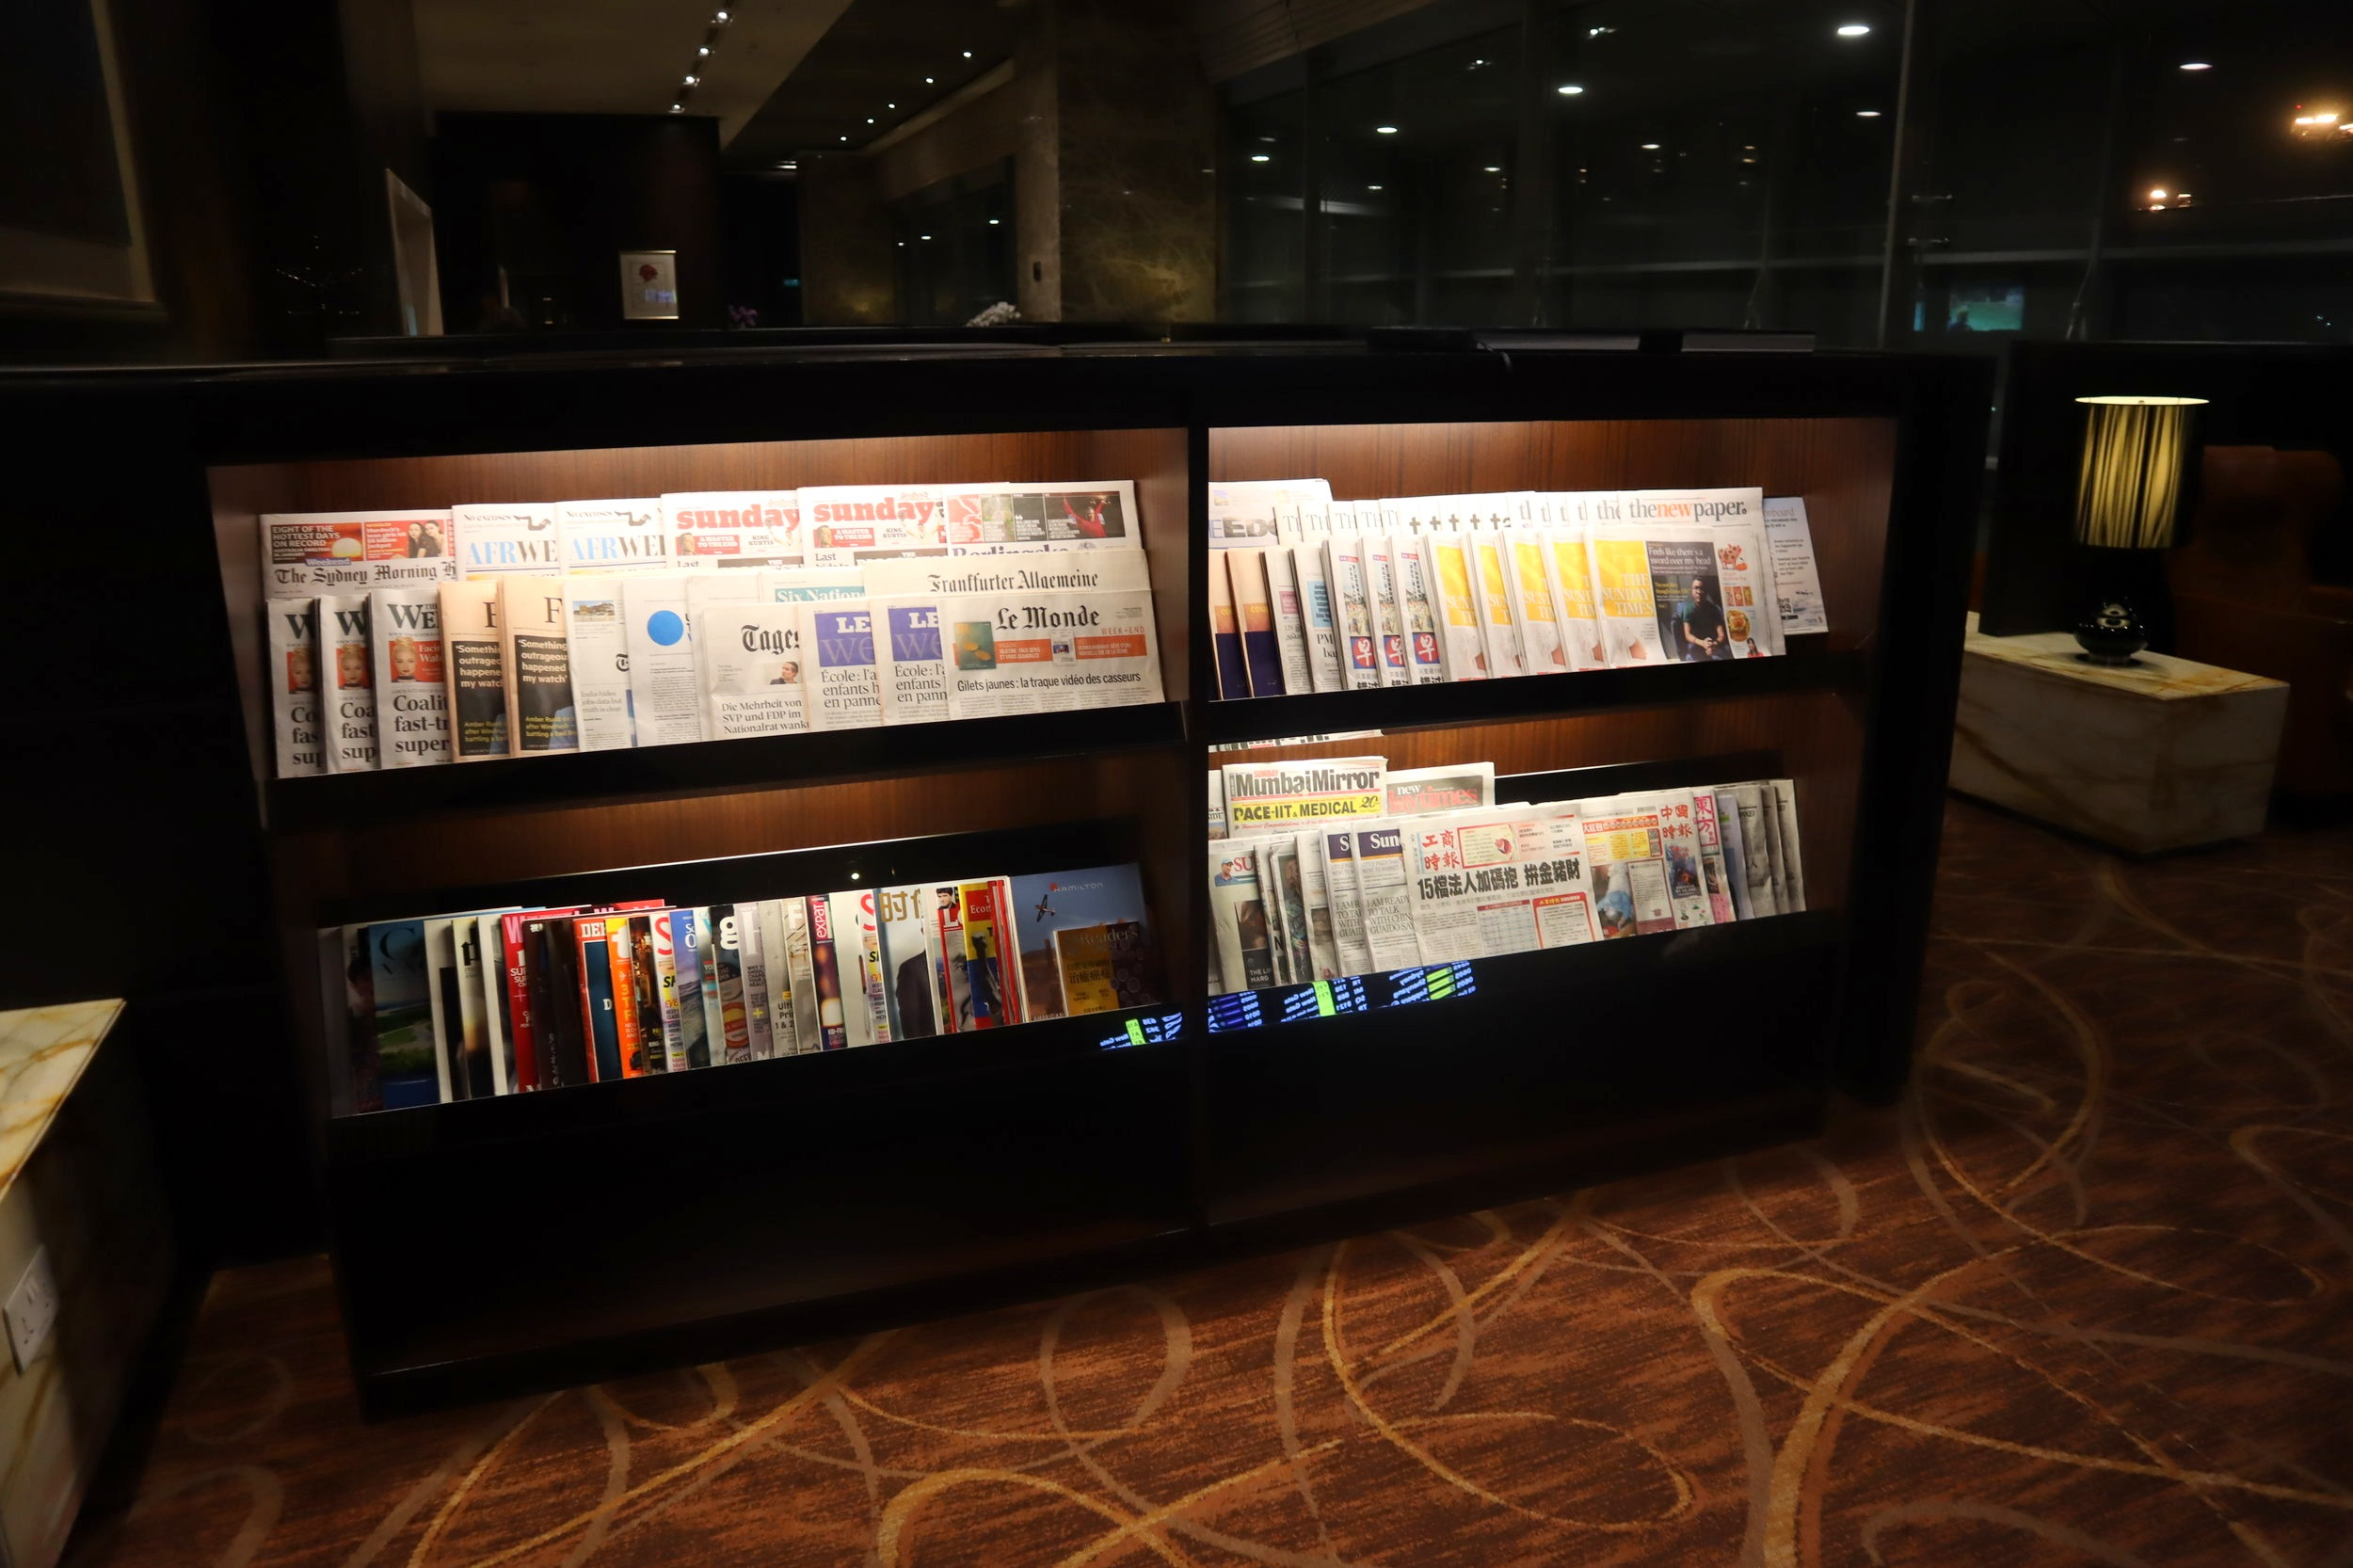 The Private Room by Singapore Airlines – Newspaper rack